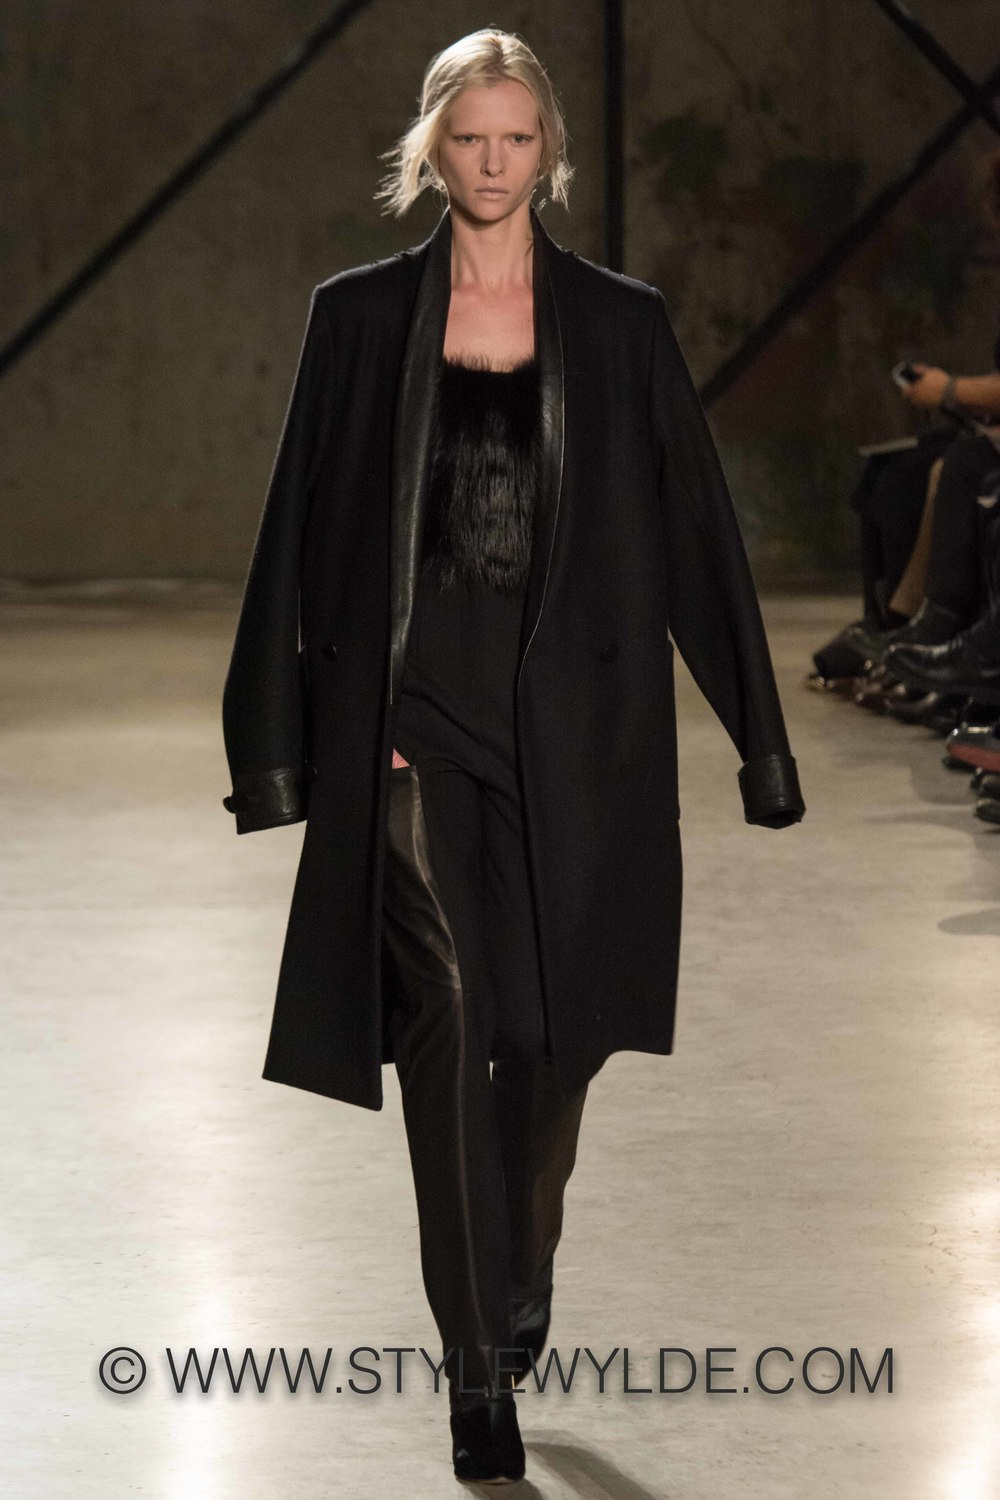 stylewylde_sally_lapointe_fw_2014-8.jpg